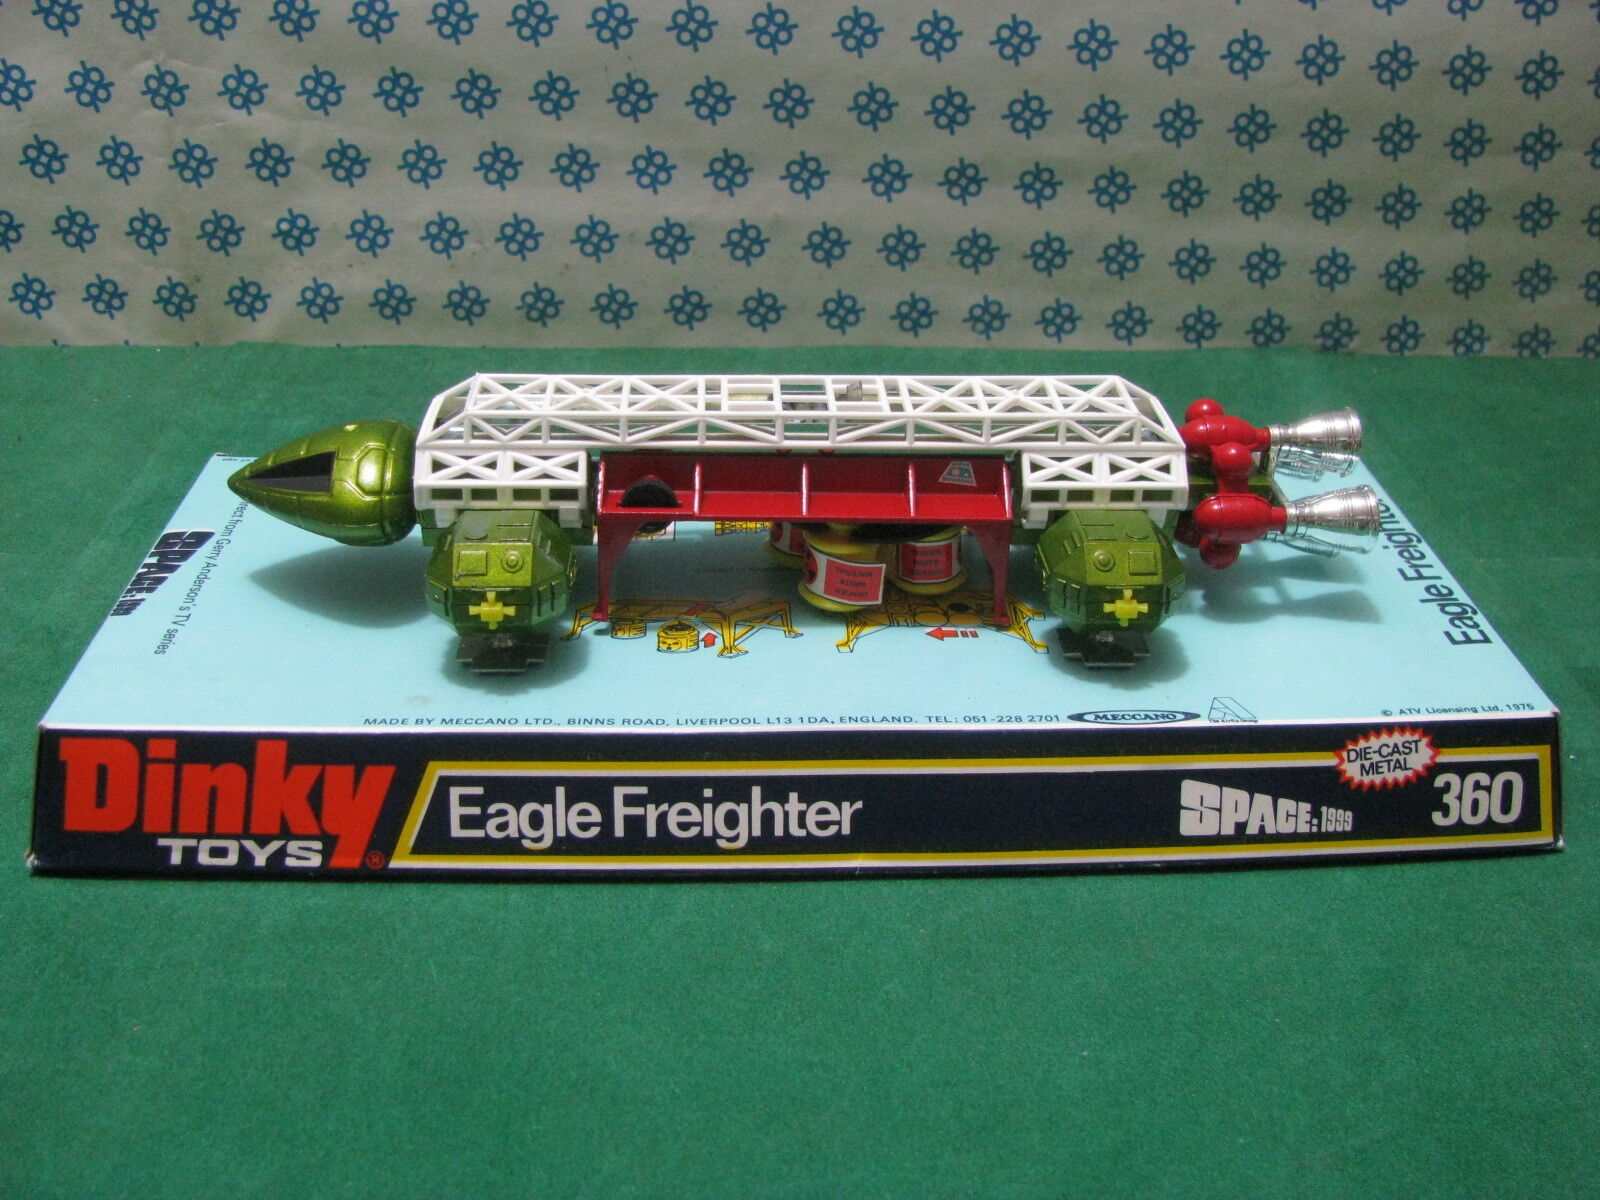 Freighter  Eagle Space 1999 Aquila spazio 1999 Gerry Anderson  - Dinky Toys MIB